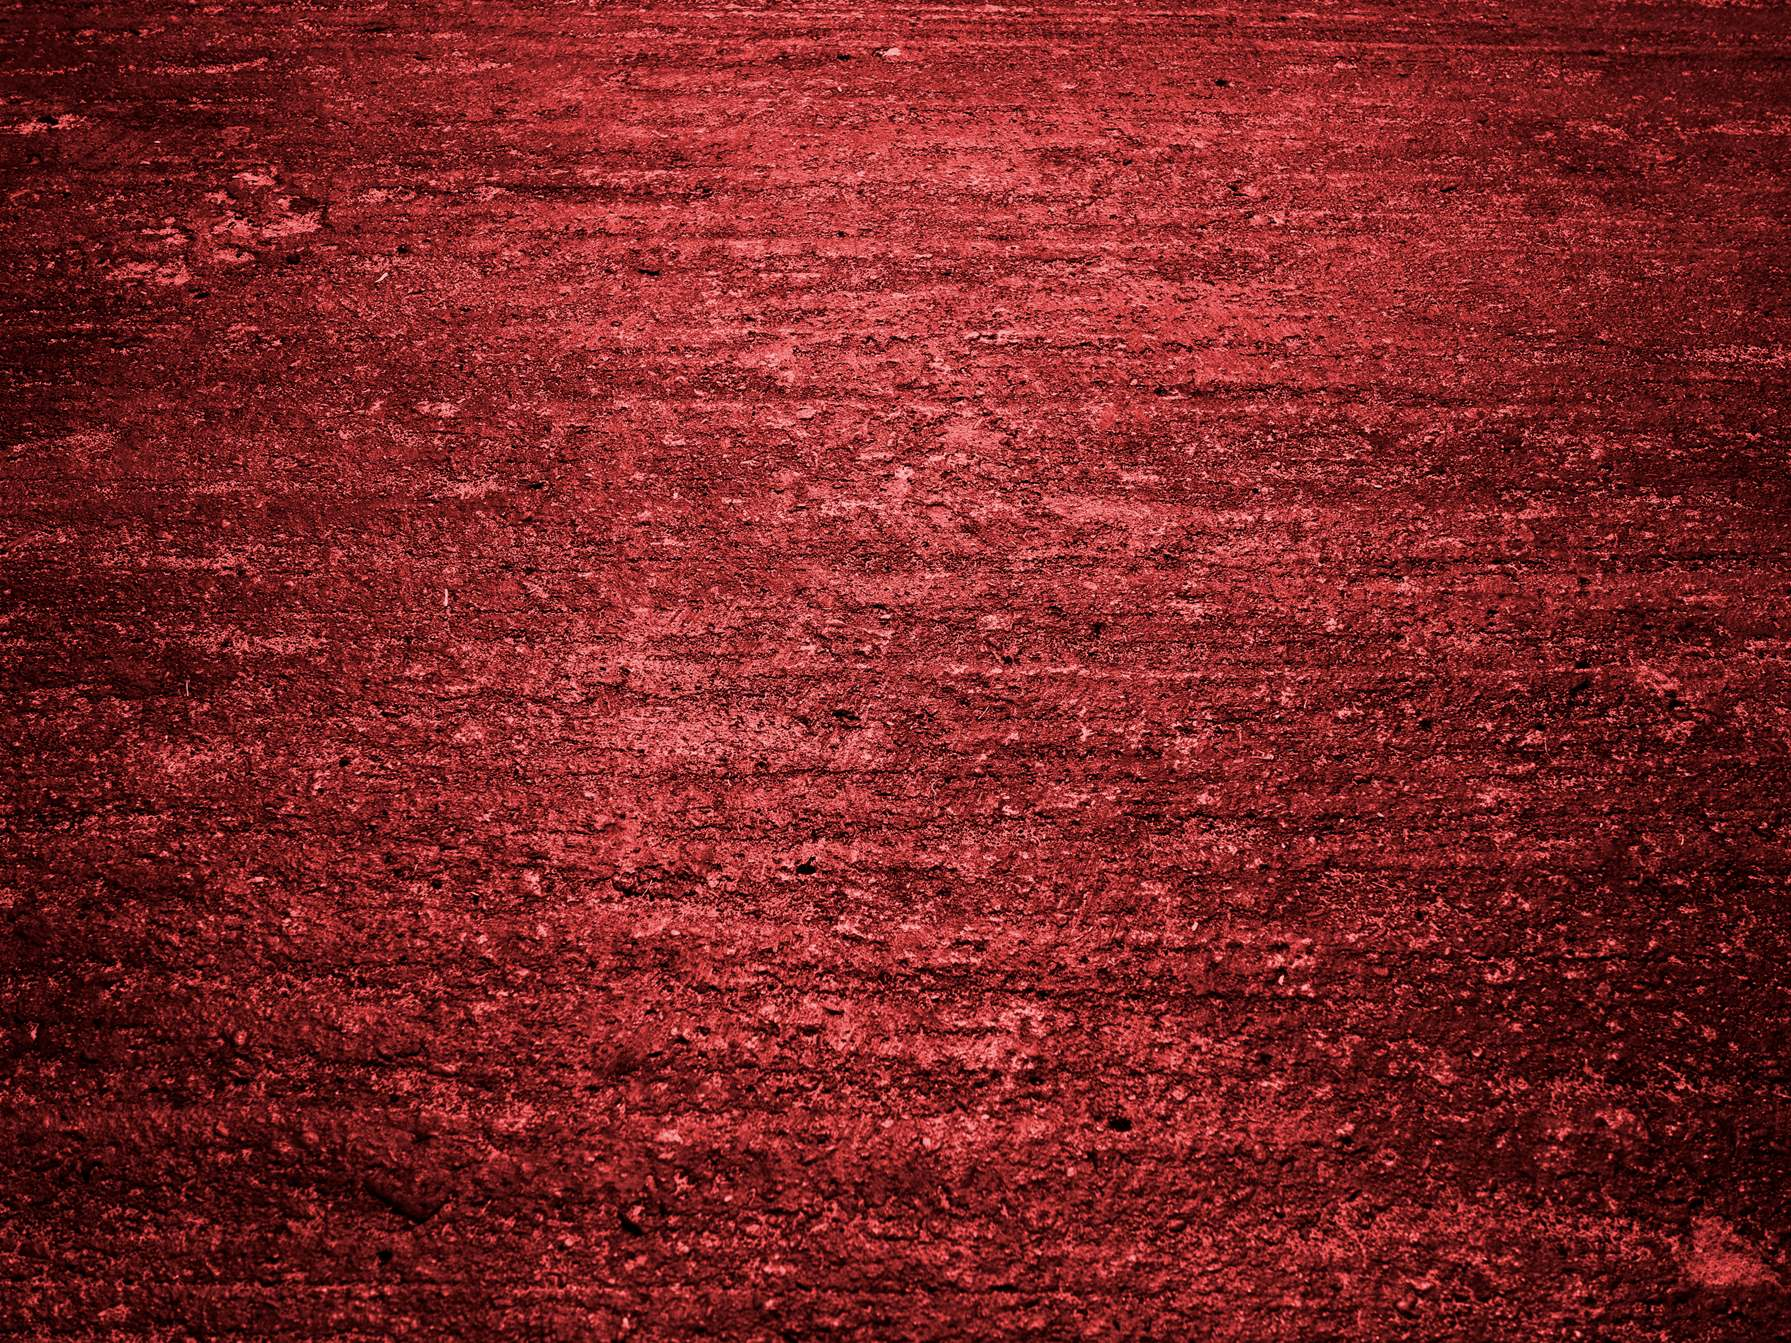 Red Grungy Concrete Texture Background Photohdx